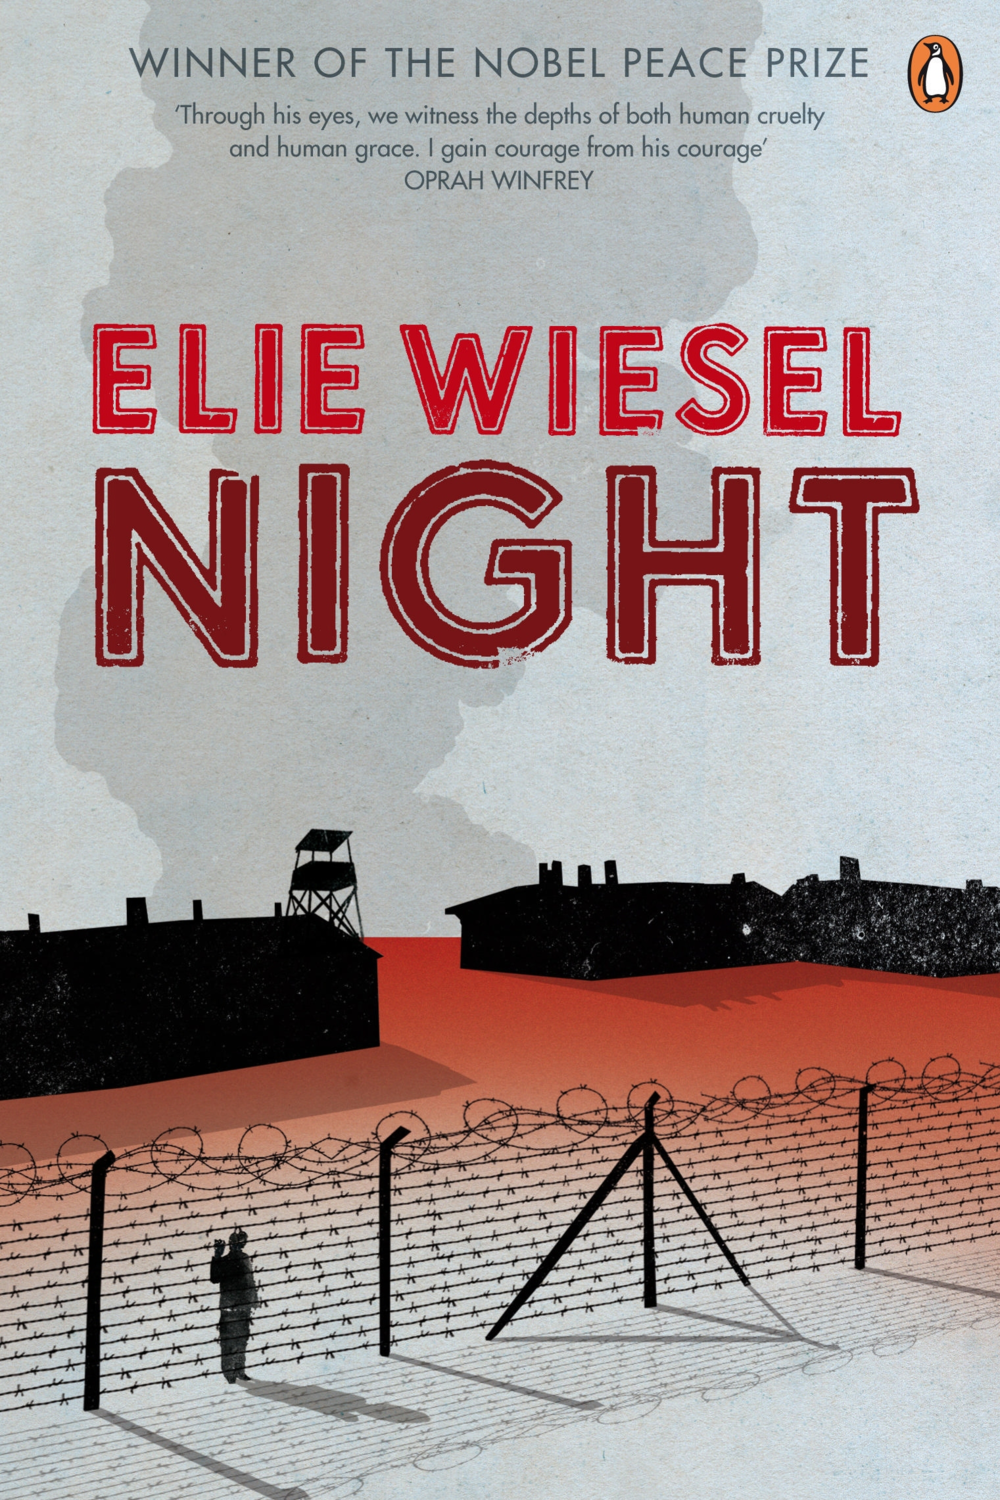 Night by Elie Wiesel   Night is a short nonfiction/modern-day classic told by a survivor of the Holocaust. Elie Wiesel won a nobel peace prize and his story of entering concentration camps during the end of the Second World War is harrowing and powerful. He stays with his father (both Jewish) in the camps and endures the decline of his idol and role model, as well as the death of his understanding of God. His story is, and should be, unforgettable.  Recommend?  Yes